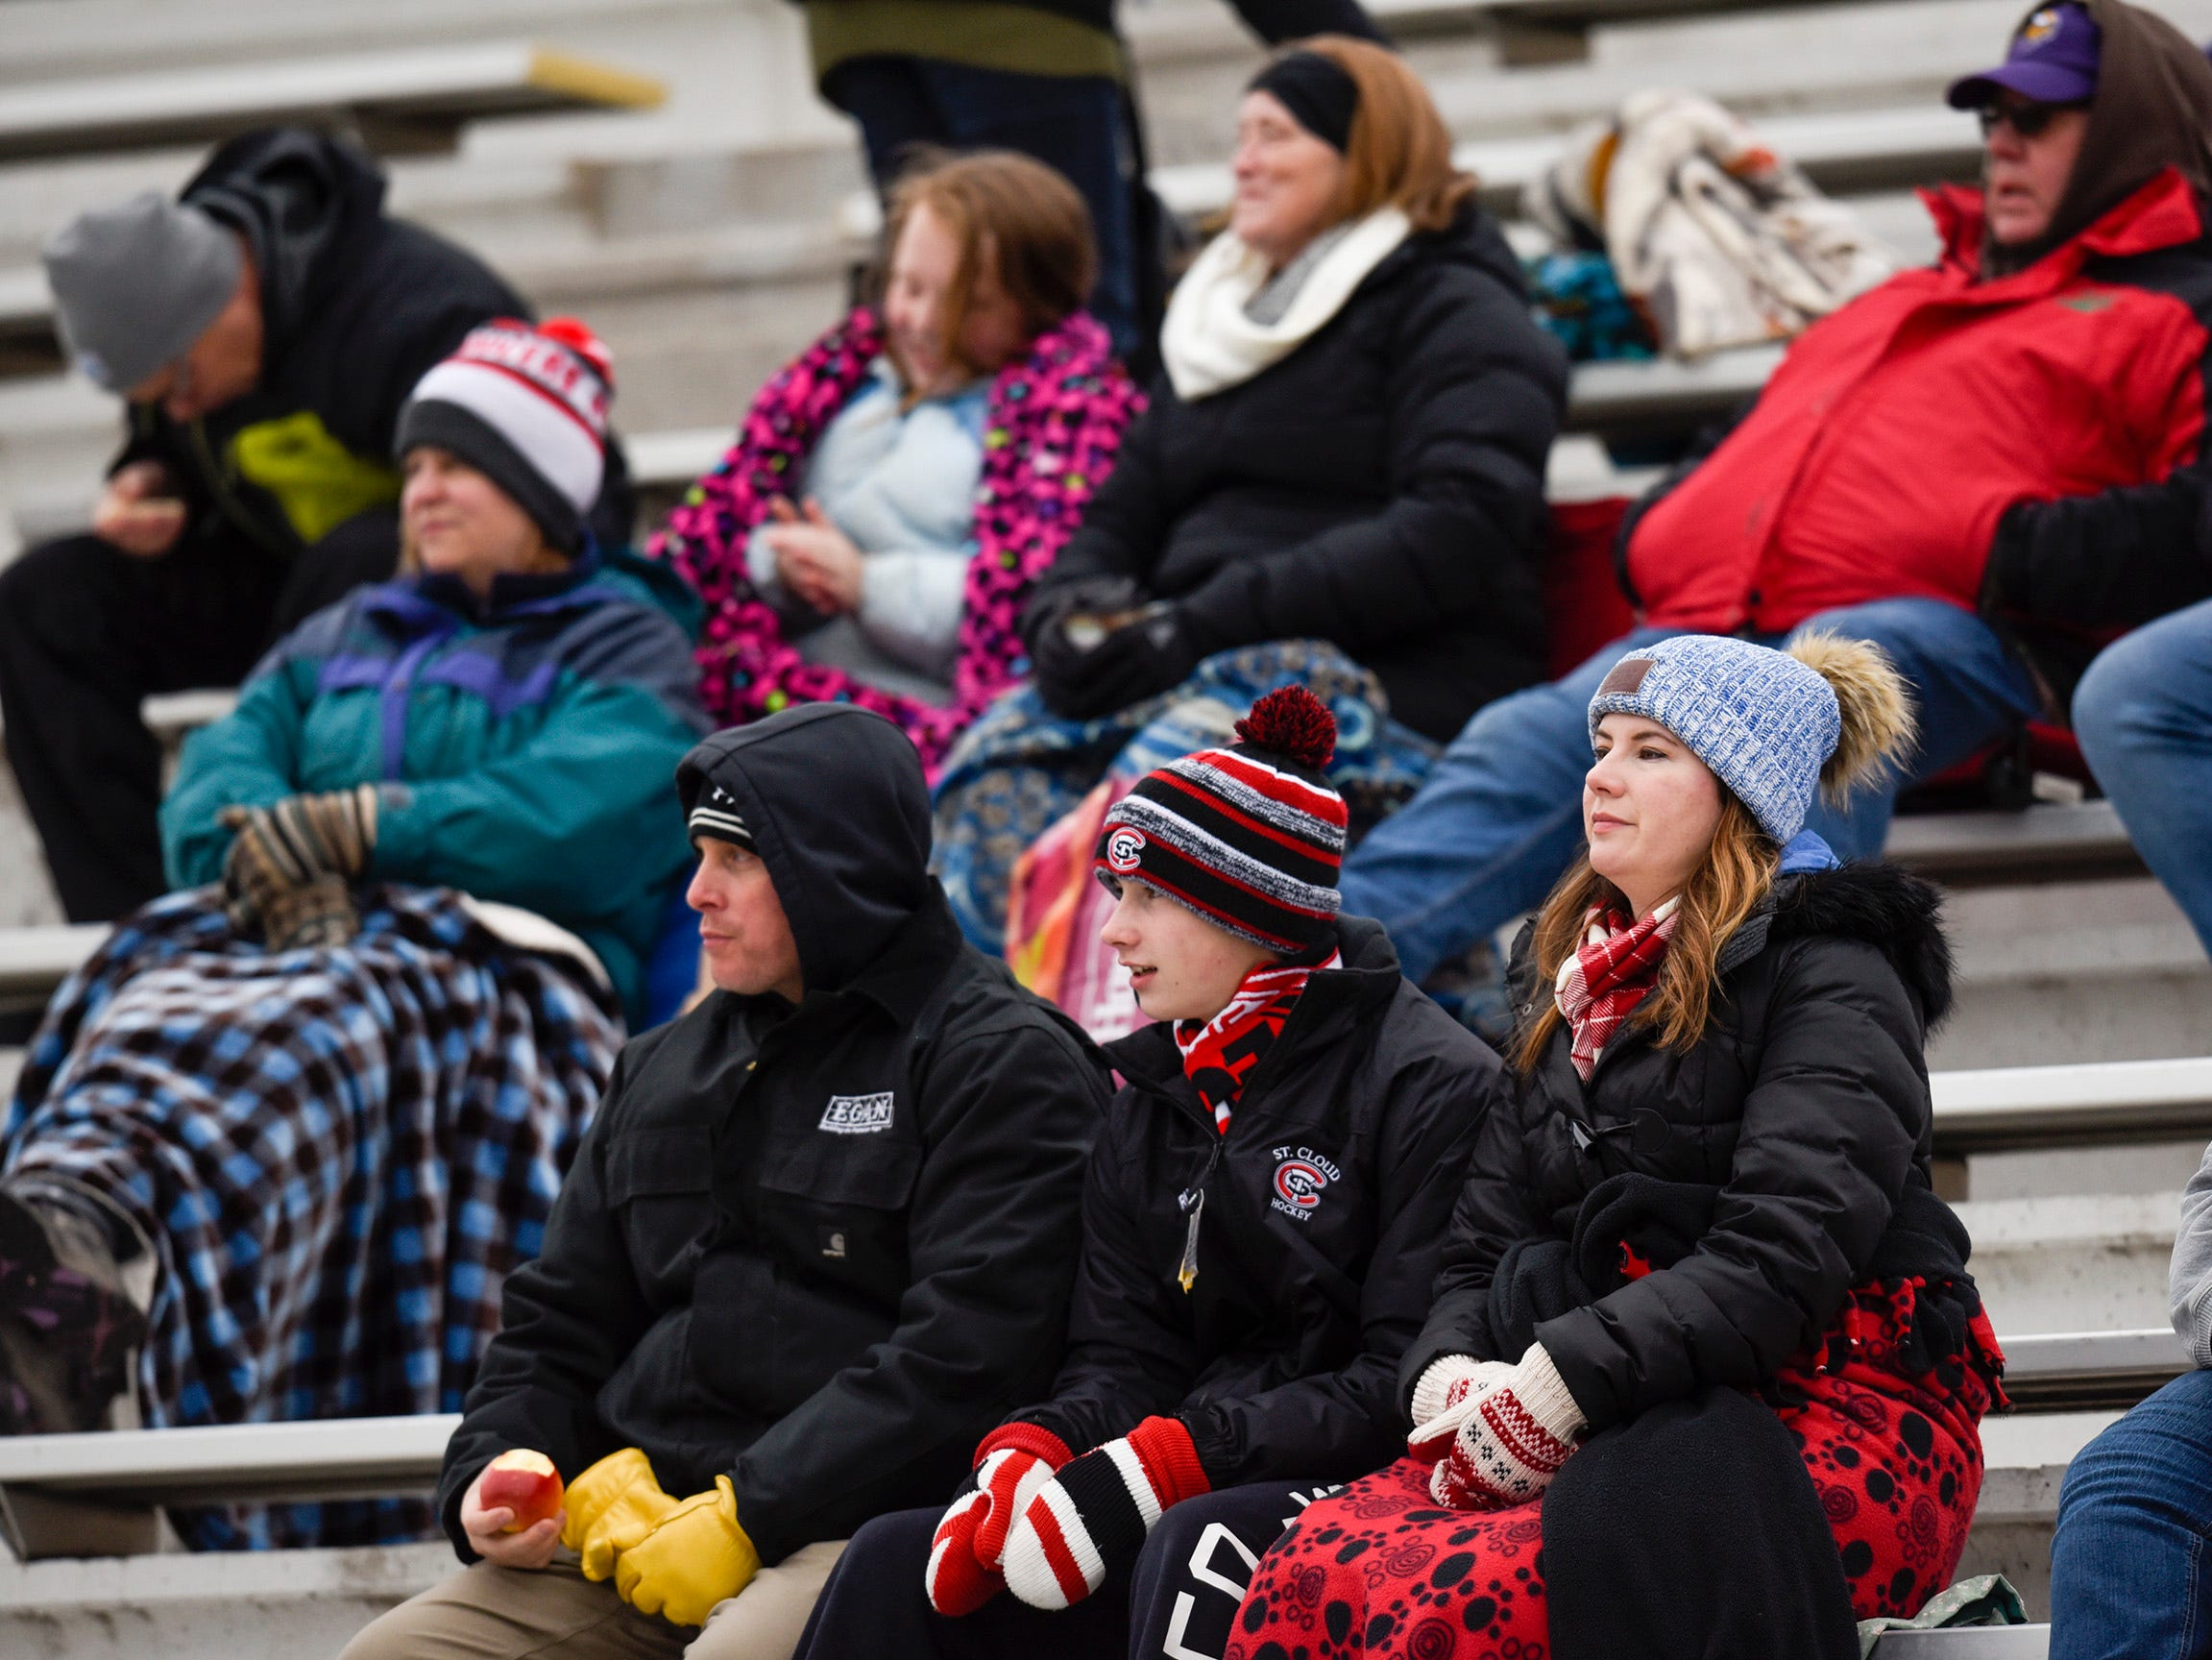 Fans try to stay warm watching the match Thursday, Oct. 11, at Apollo High School.